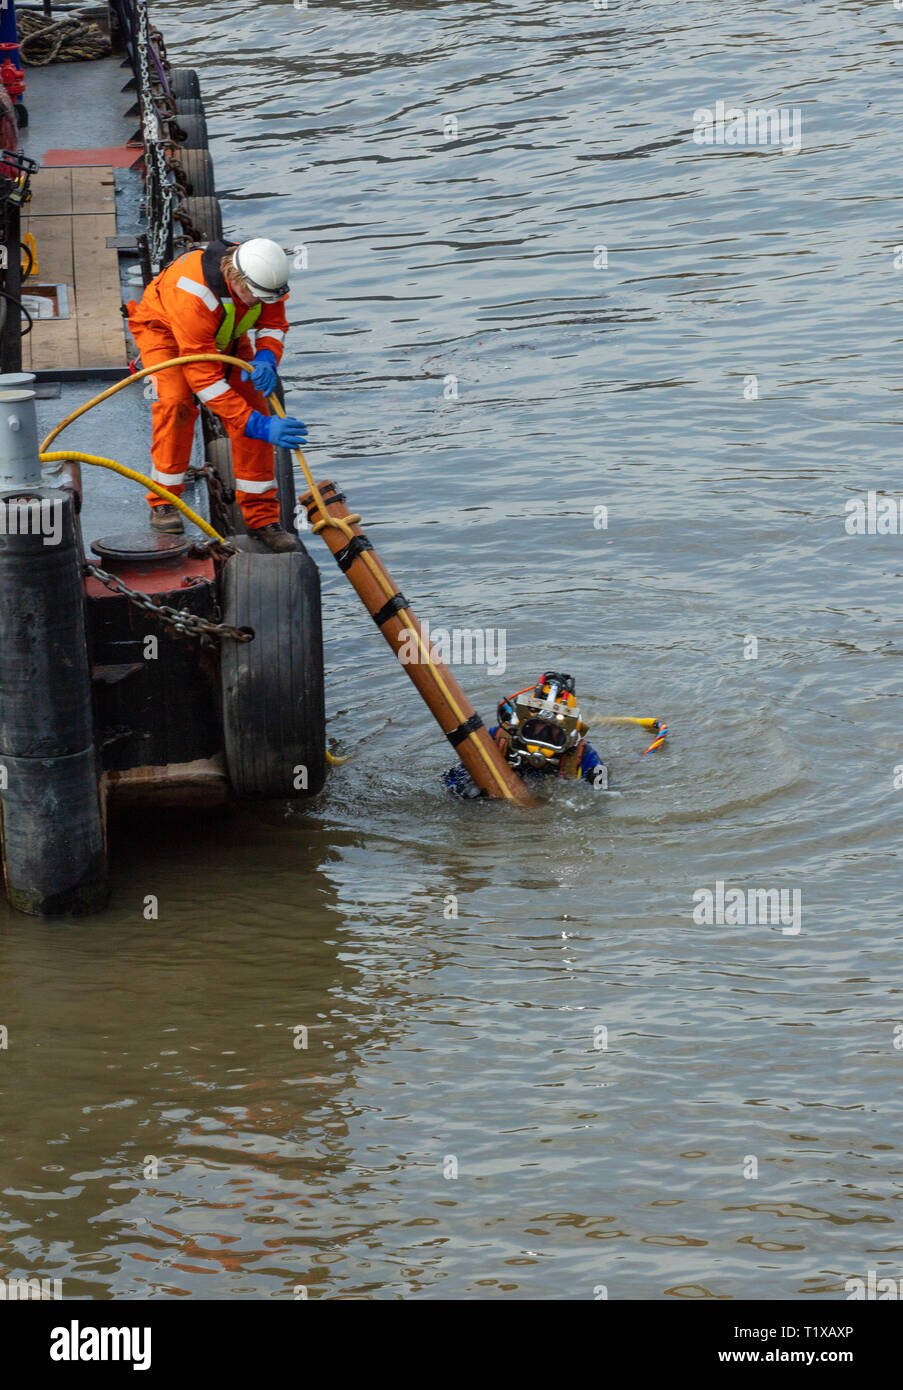 Diver lift a pressure cleaning pipe with the help of a maintenance crew member onto a boat after unblocking an underwater drain in the River Thames. - Stock Image